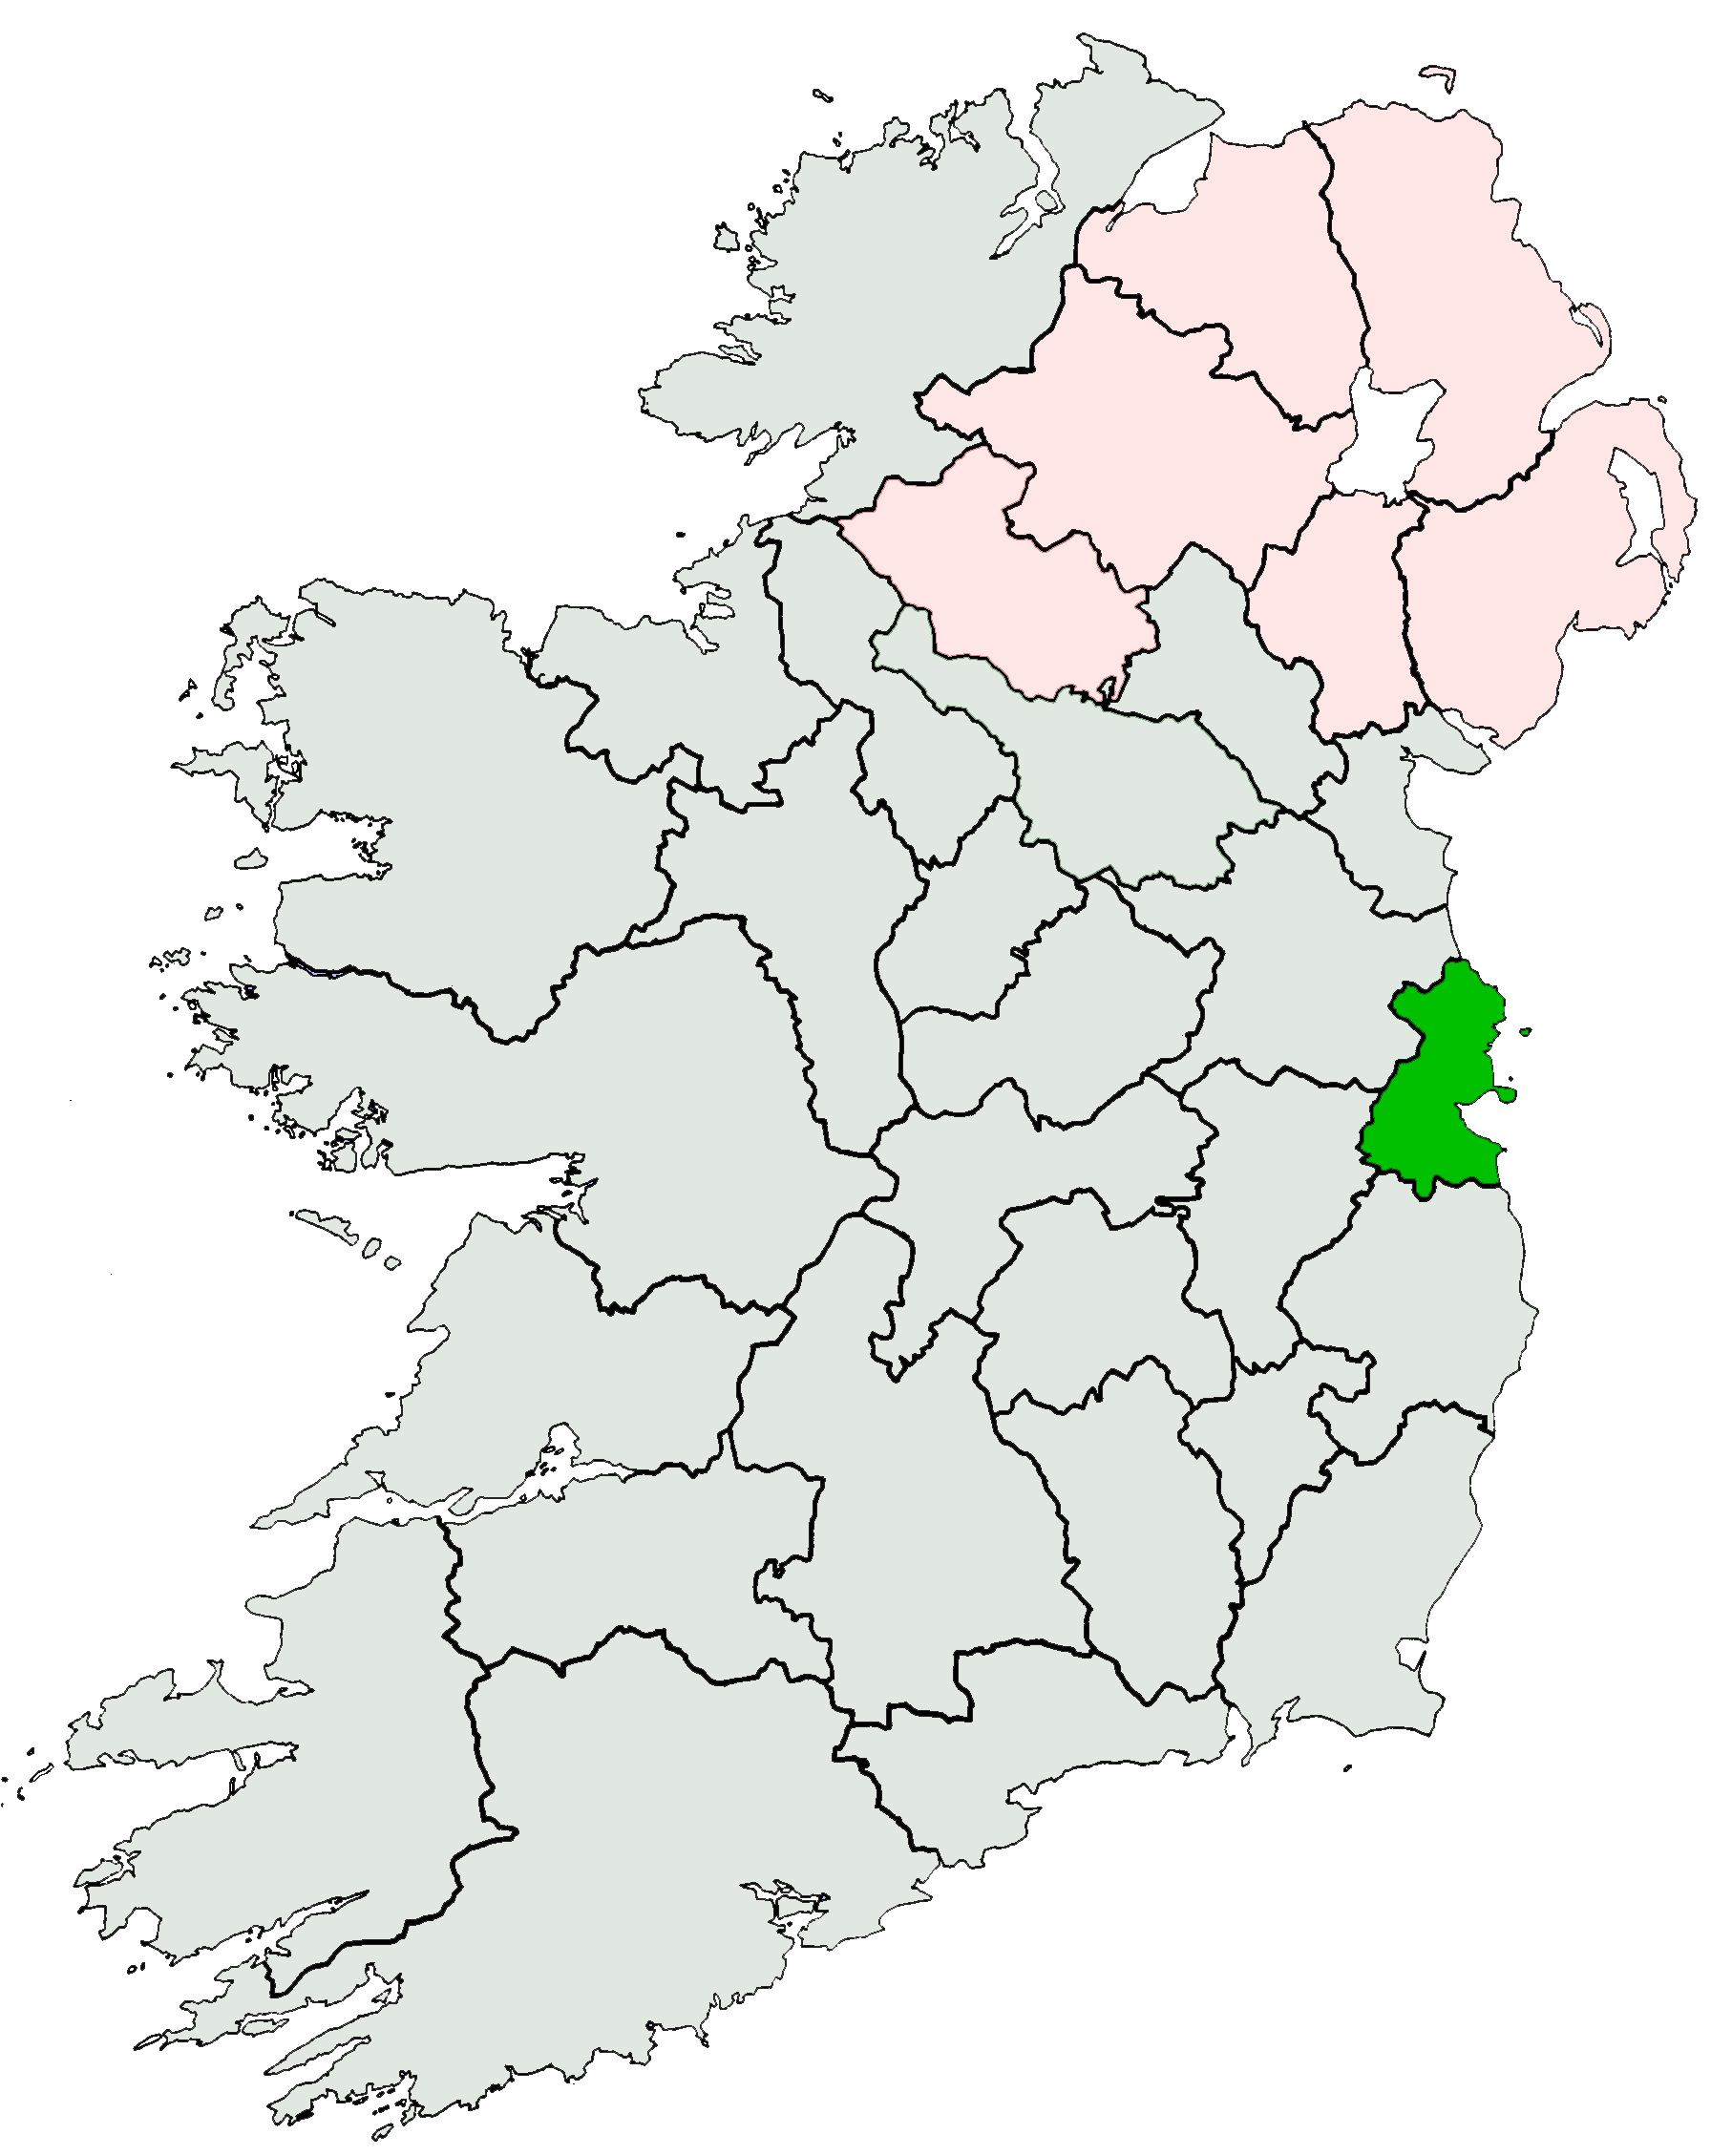 FileIreland location Dublinjpg Wikimedia Commons